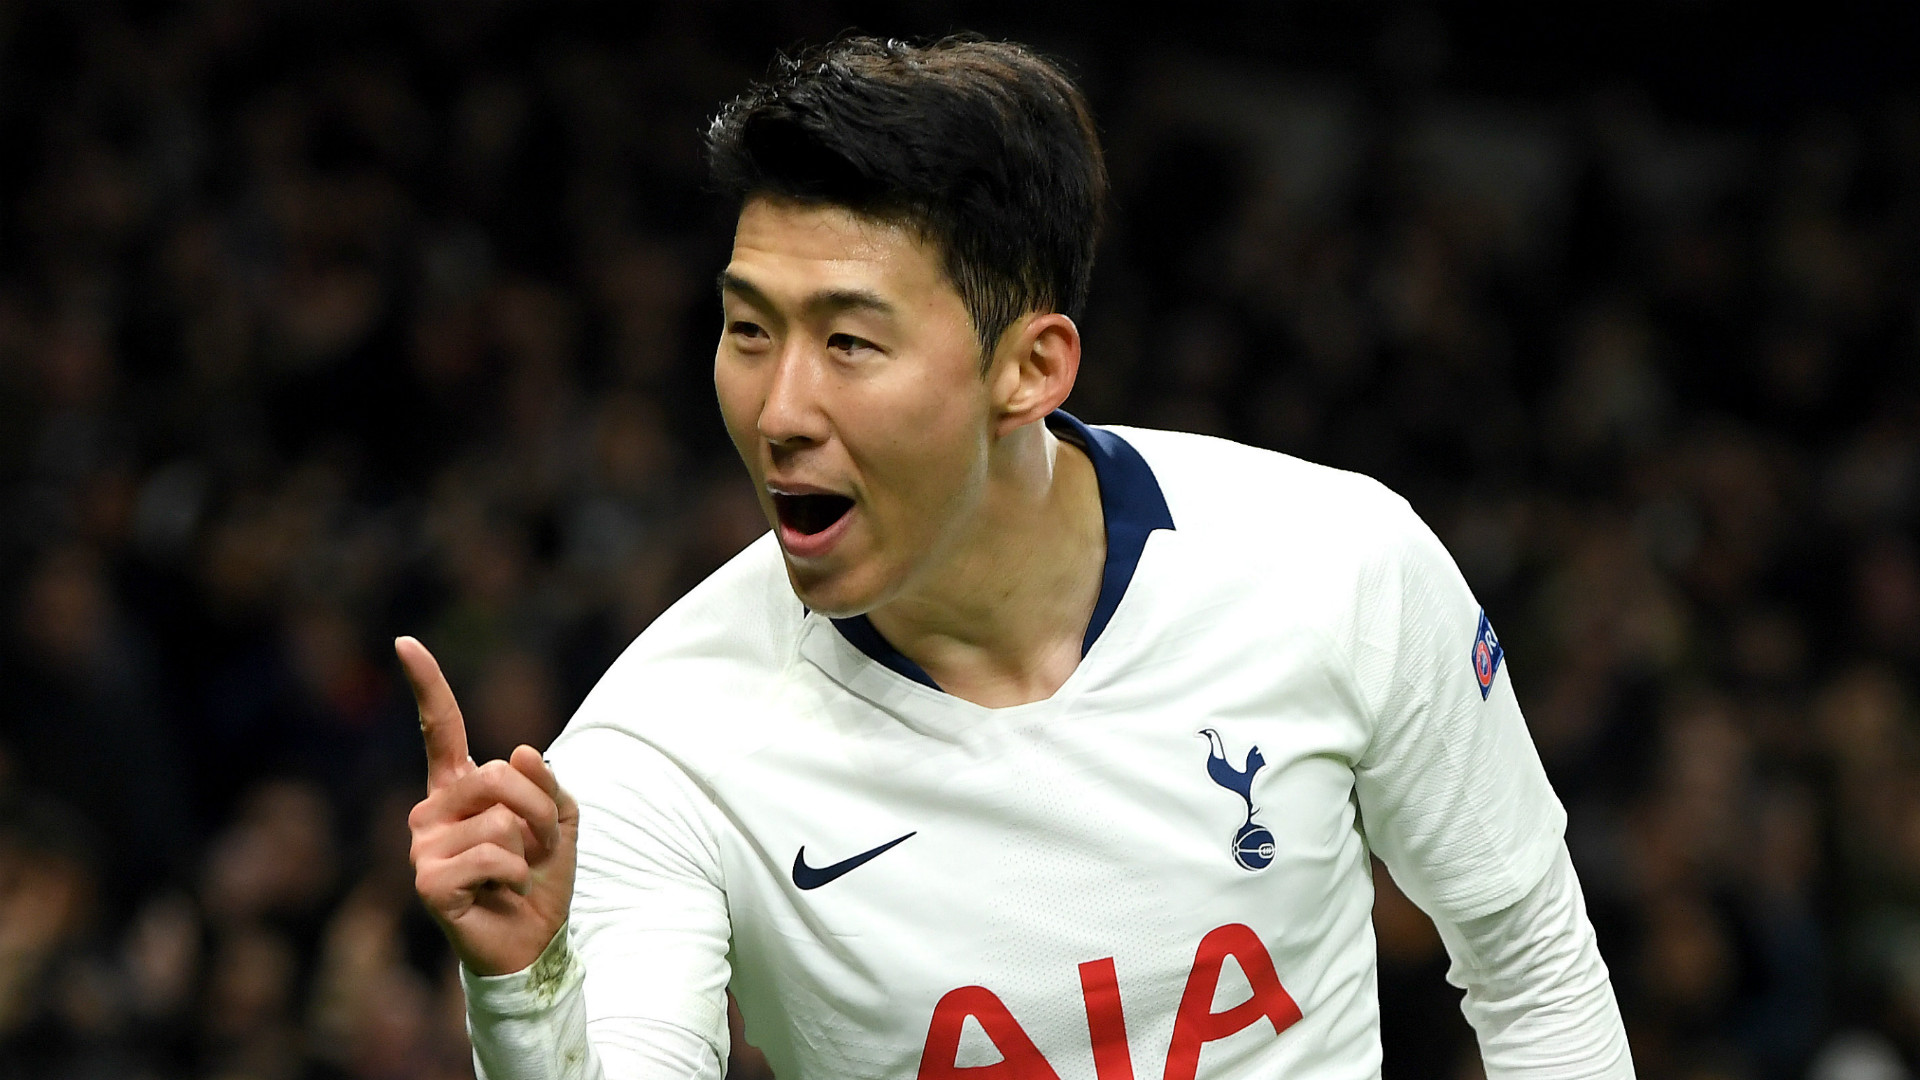 No Kane? No problem as Lucas Moura treble fires Spurs into third